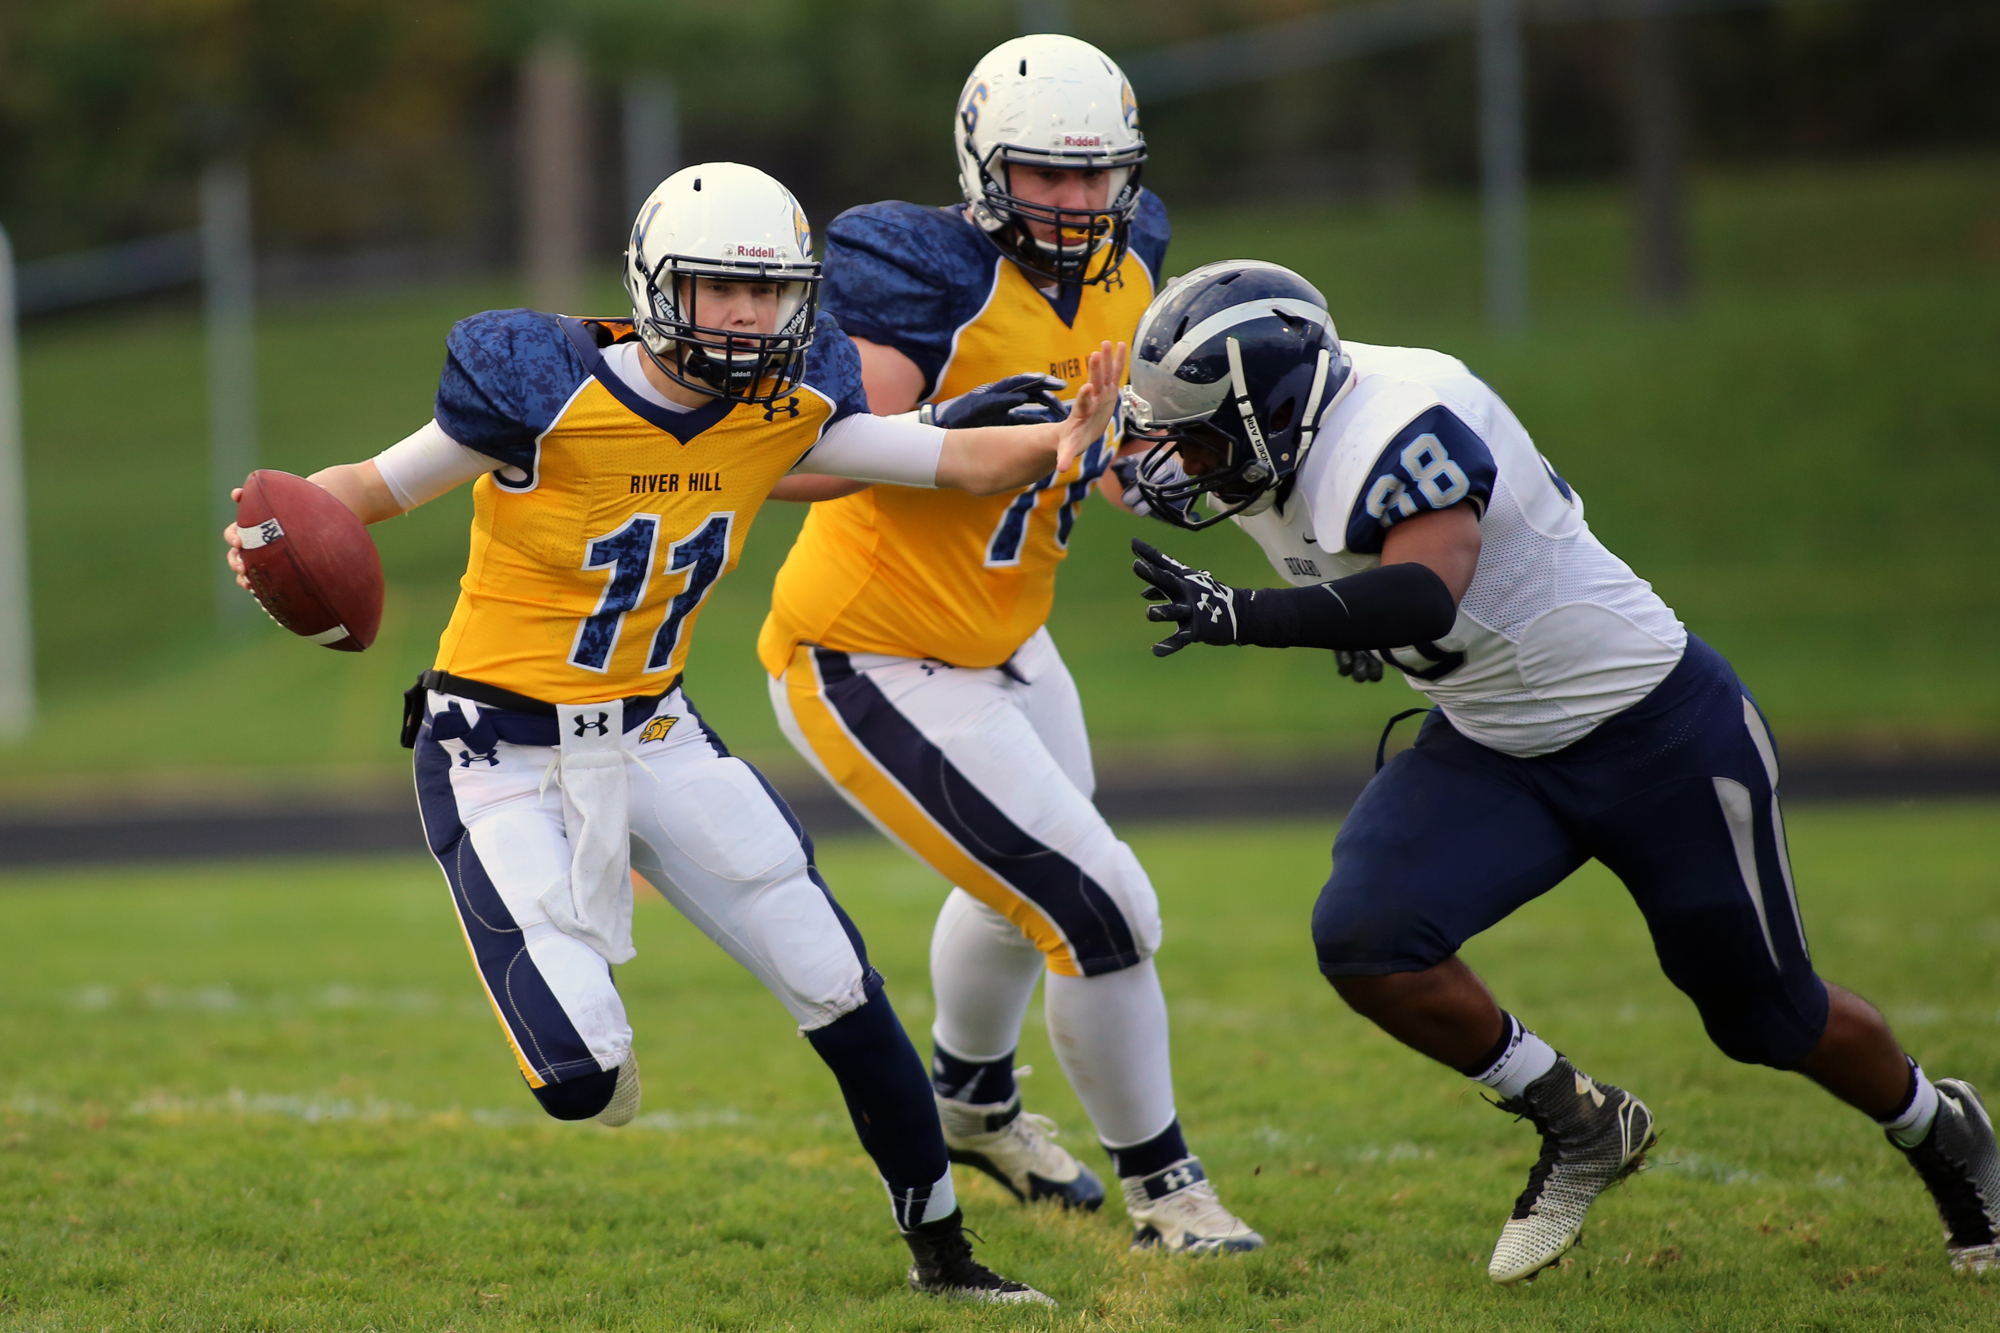 Best of high school sports week of oct 27 31 for River hill